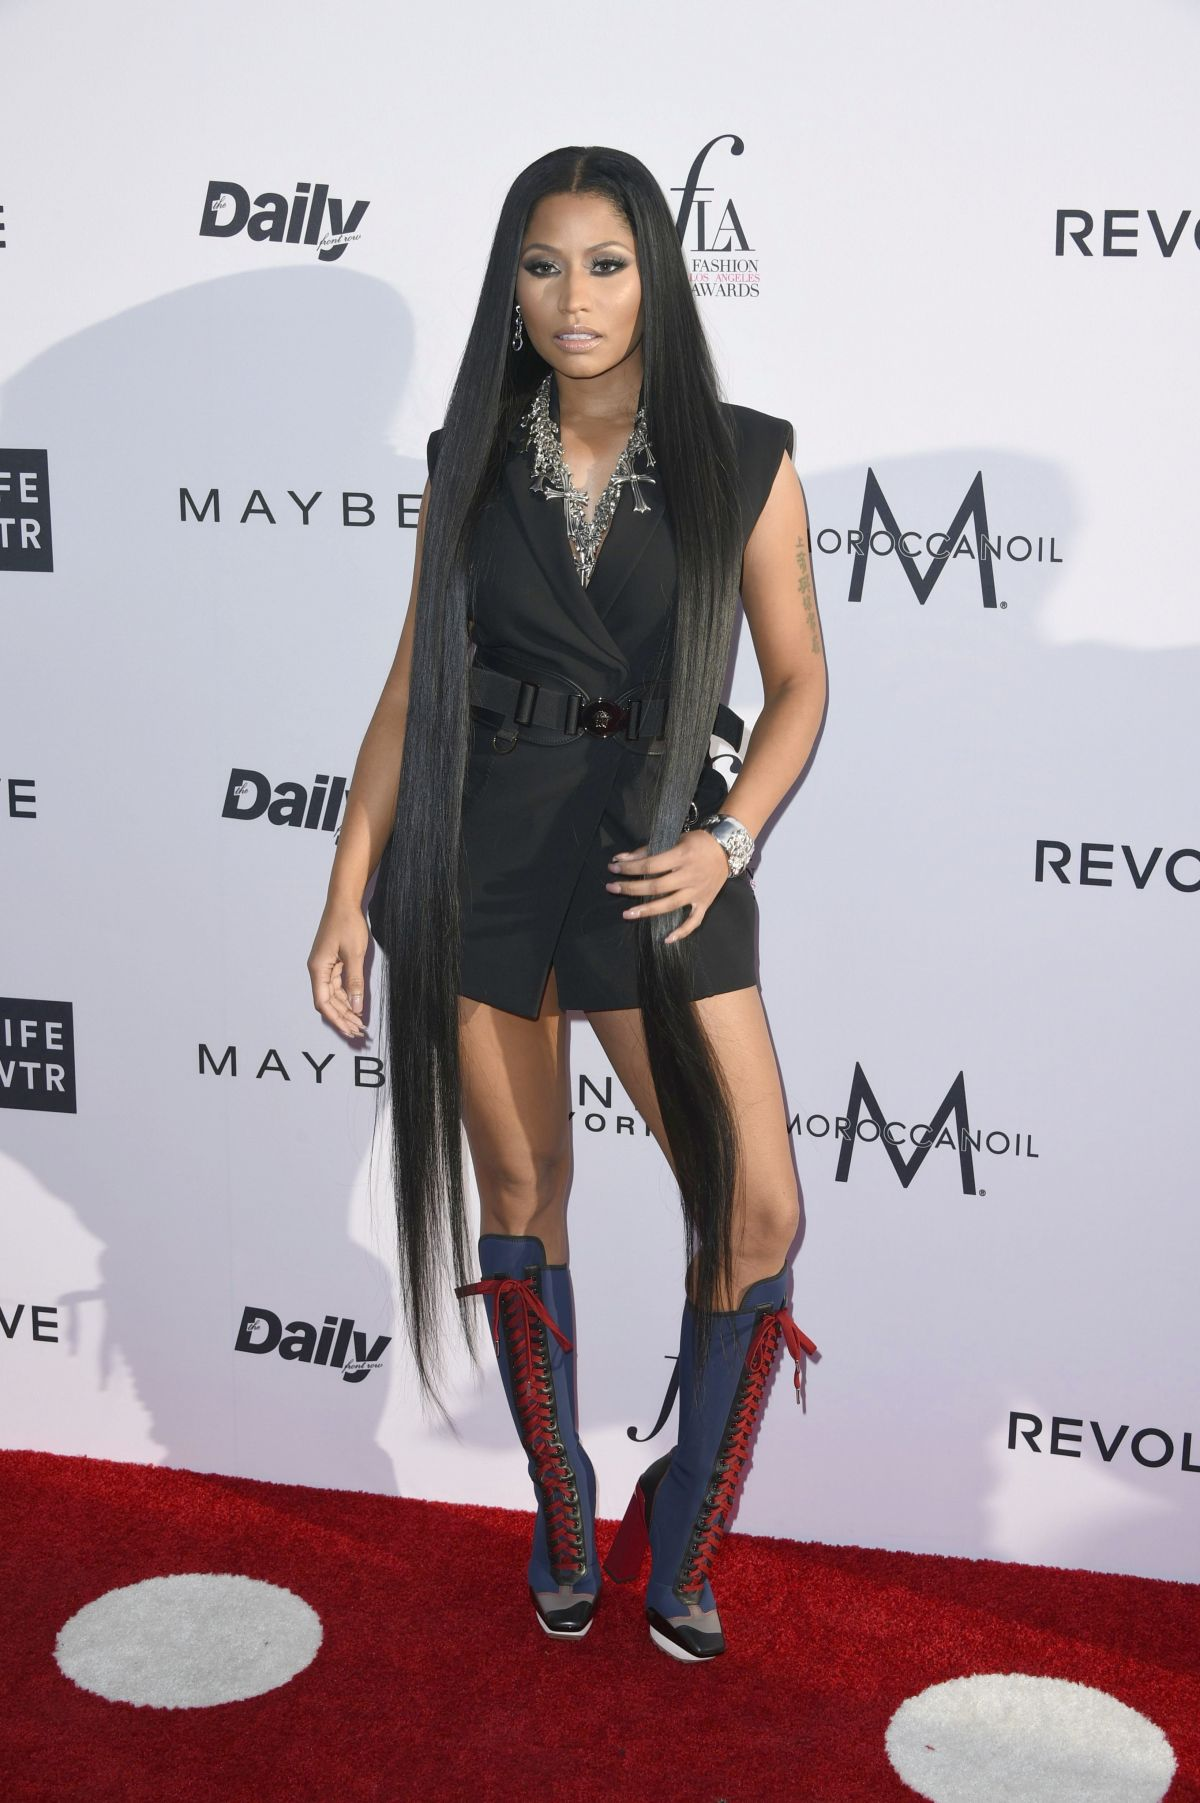 Nicki Minaj At Daily Front Row's 3rd Annual Fashion Los Angeles Awards – West Hollywood   nicki-minaj-at-daily-front-row-s-3rd-annual-fashion-los-angeles-awards-west-hollywood_6